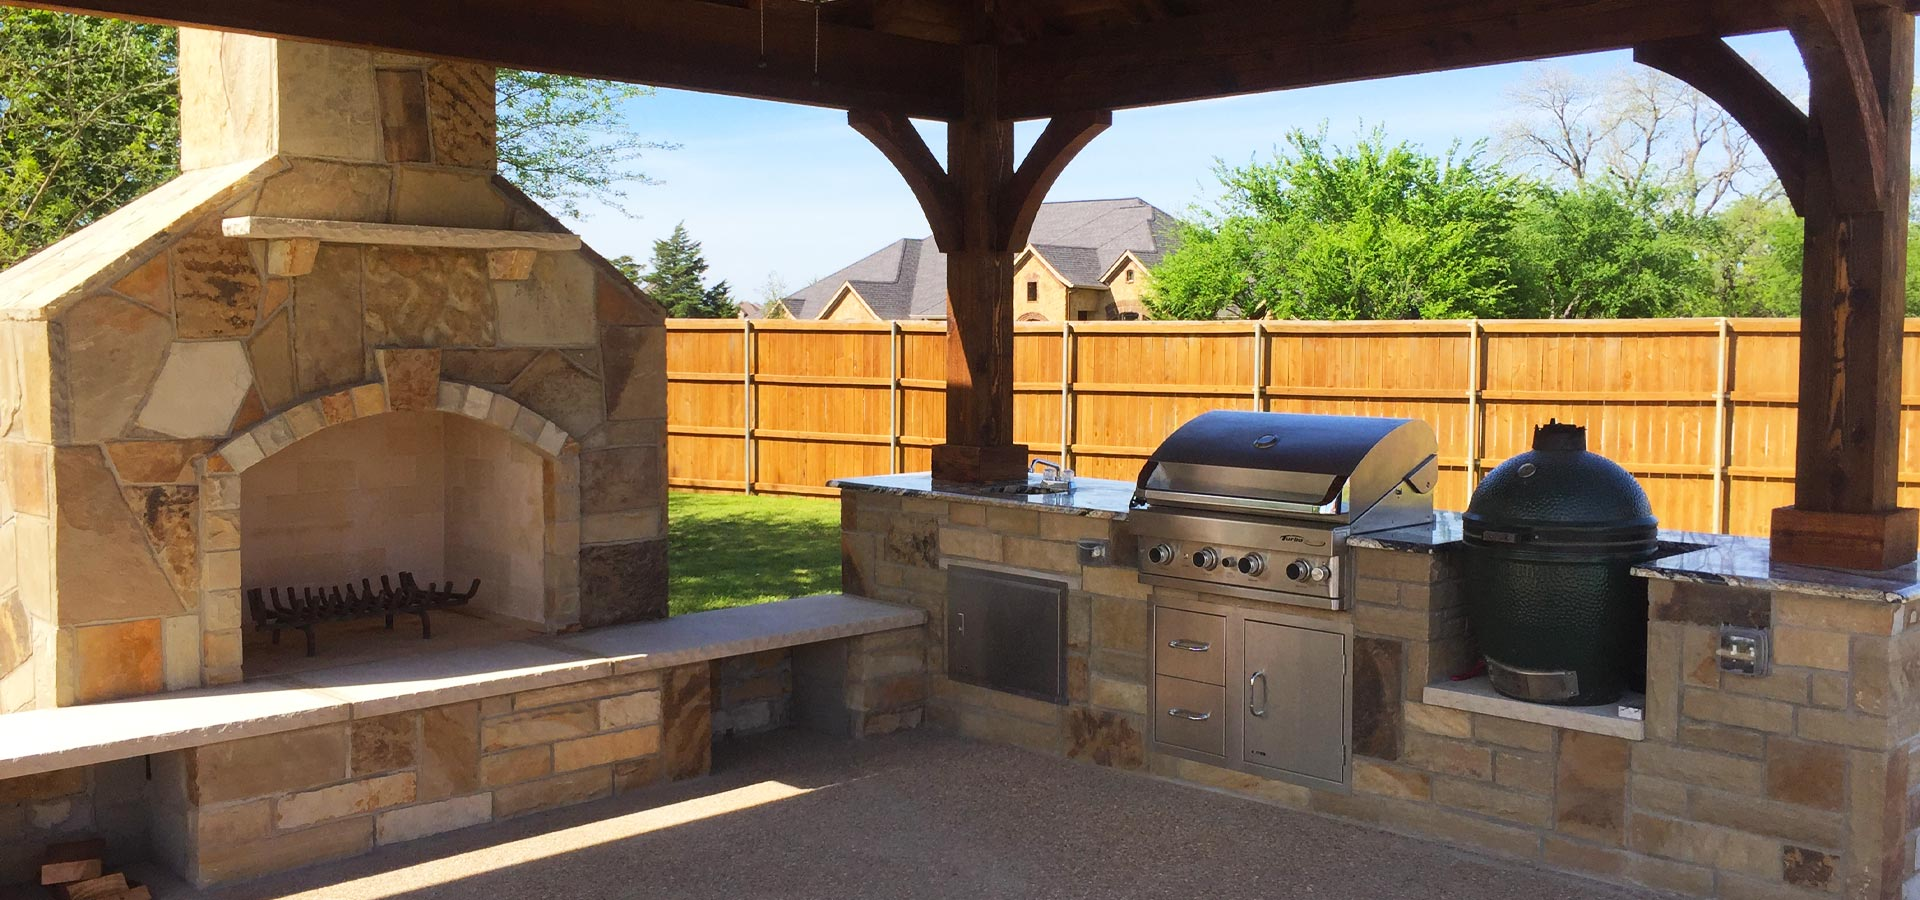 Pool Company, Pool Builder for Custom Pools, Outdoor Kitchens, and Patio Pergolas in Mansfield, TX for your home